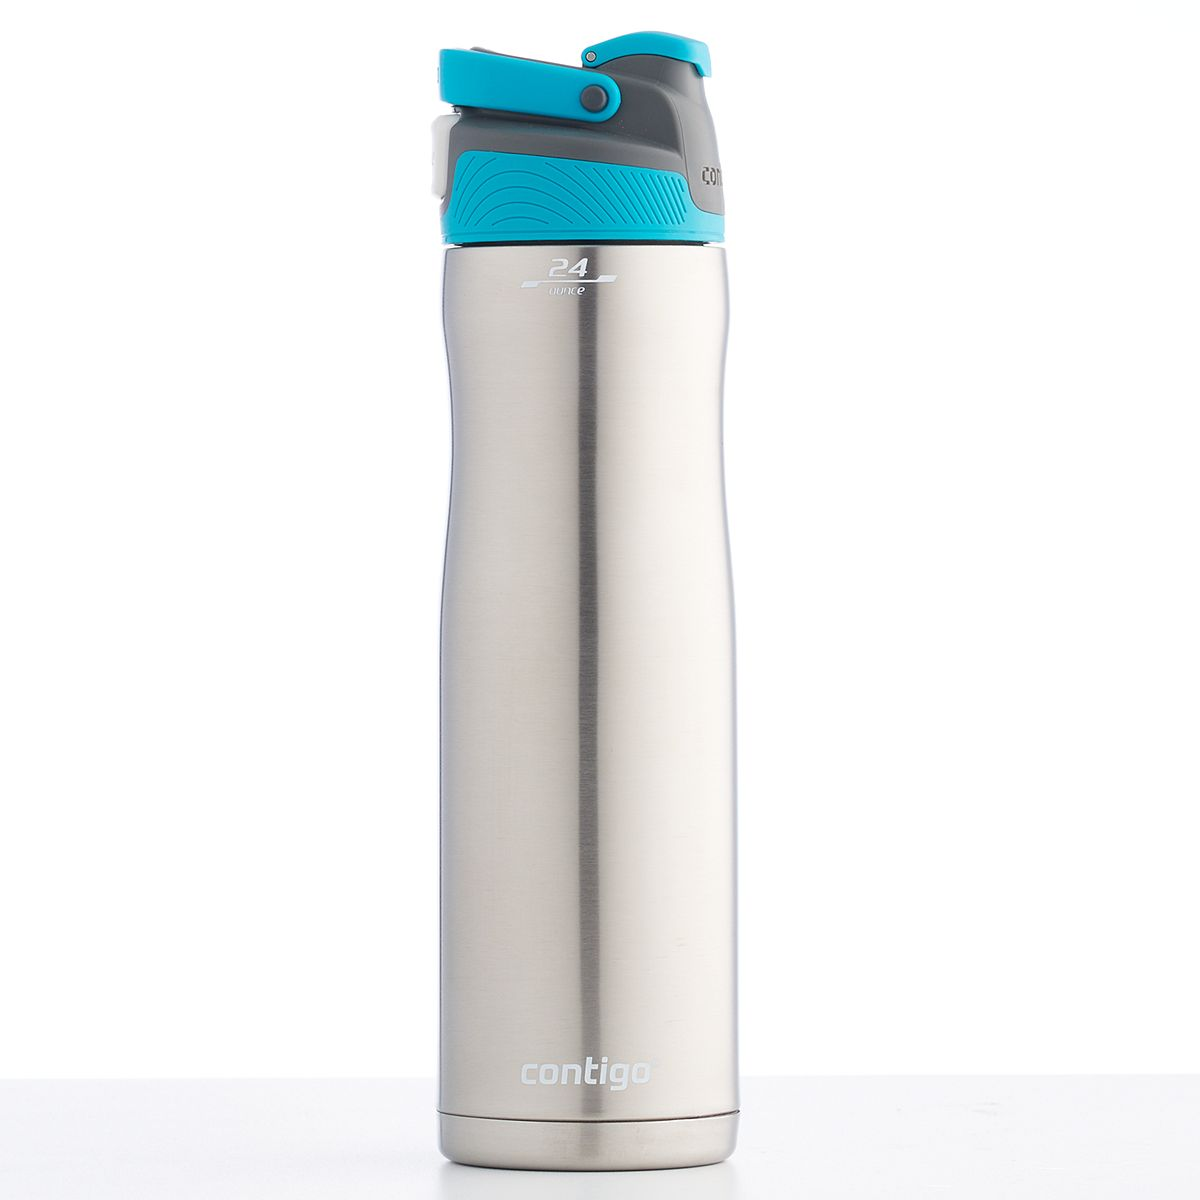 Kohl's: Contigo AUTOSEAL Chill 24-oz. Stainless Steel Water Bottle $8.32